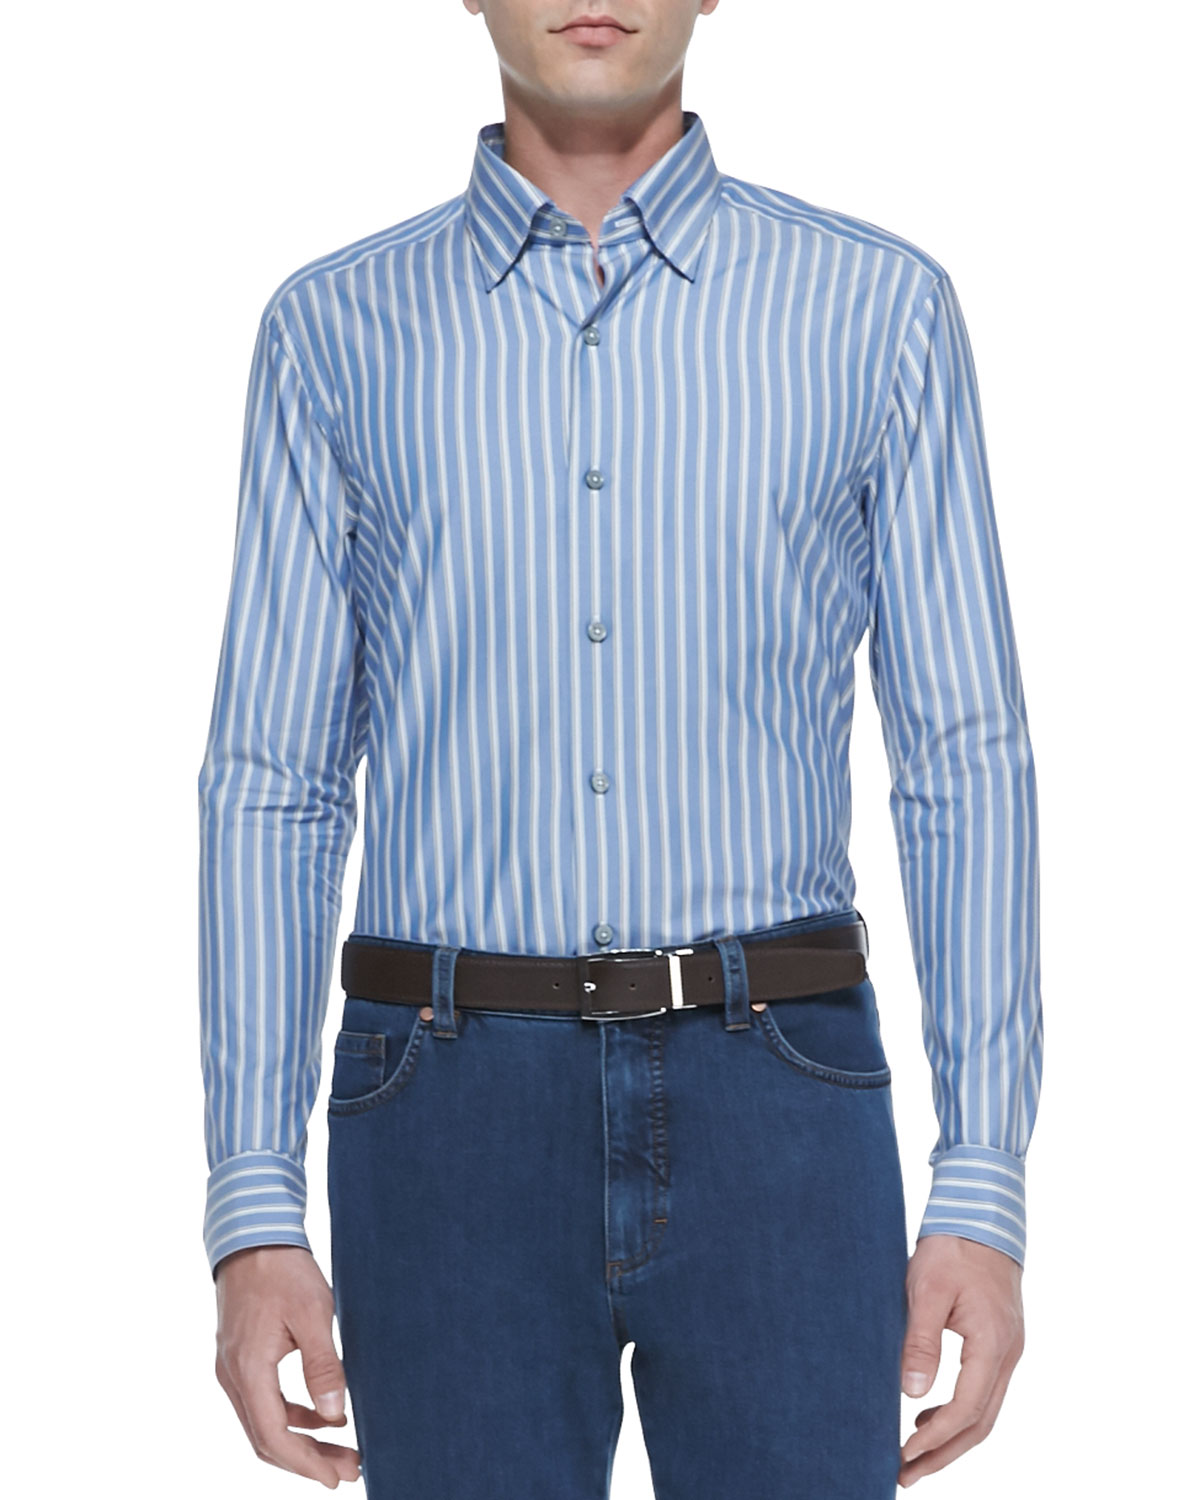 Mens Striped Oxford Long Sleeve Shirt, Blue   Ermenegildo Zegna   Blue (XXXL)